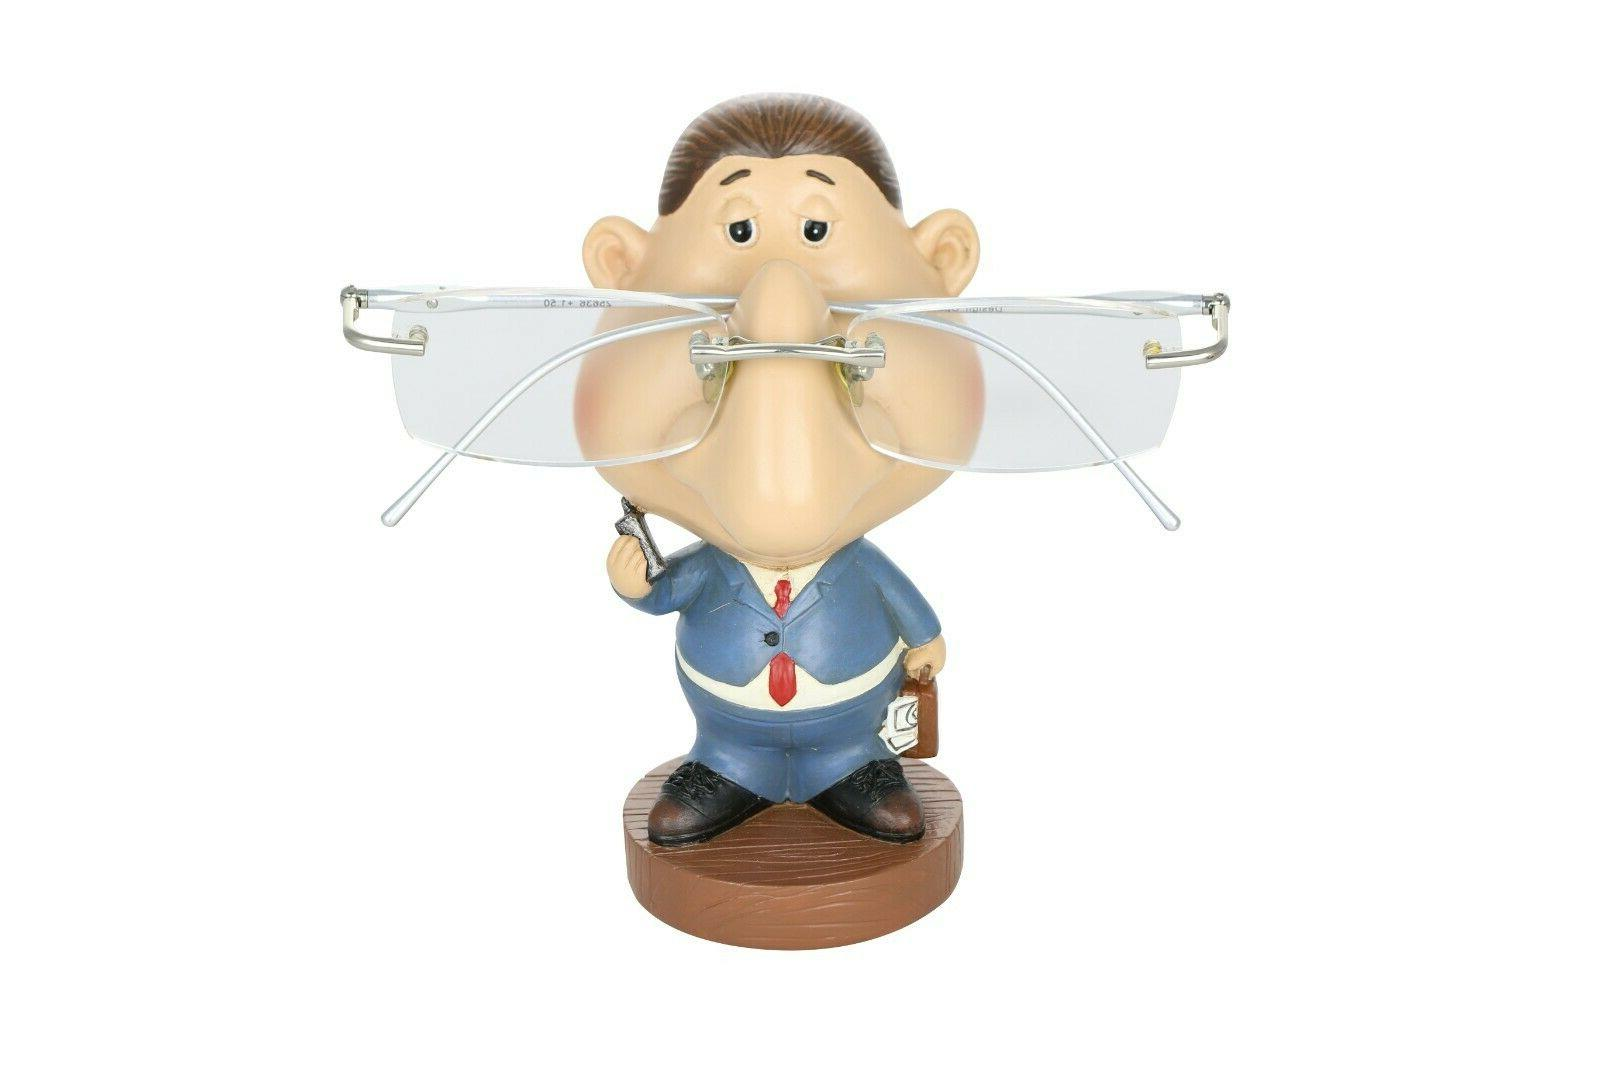 "Eyeglass Holder 5"" Business Man Whimsical Figurine Home De"